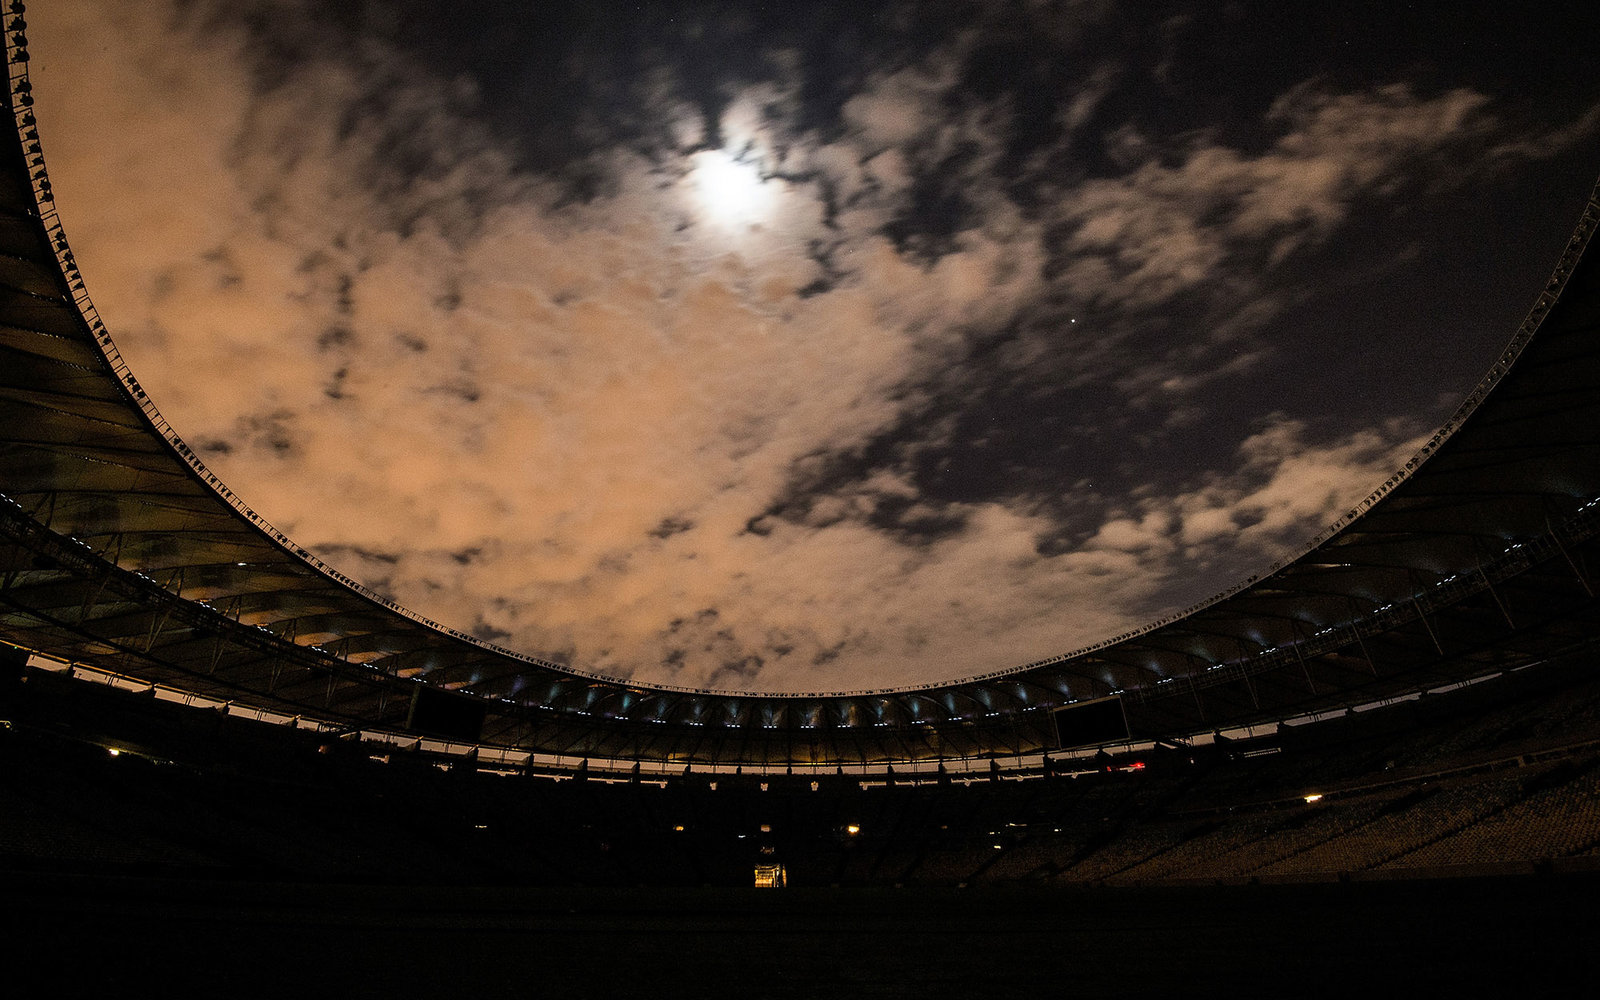 RIO DE JANEIRO, BRAZIL - MARCH 19:  The Maracana Stadium is seen with its lights off during the 2016 Earth Hour event on March 19, 2016 in Rio de Janeiro, Brazil. The Maracana Stadium will host the Opening and Closing Ceremonies for the Rio 2016 Olympic G